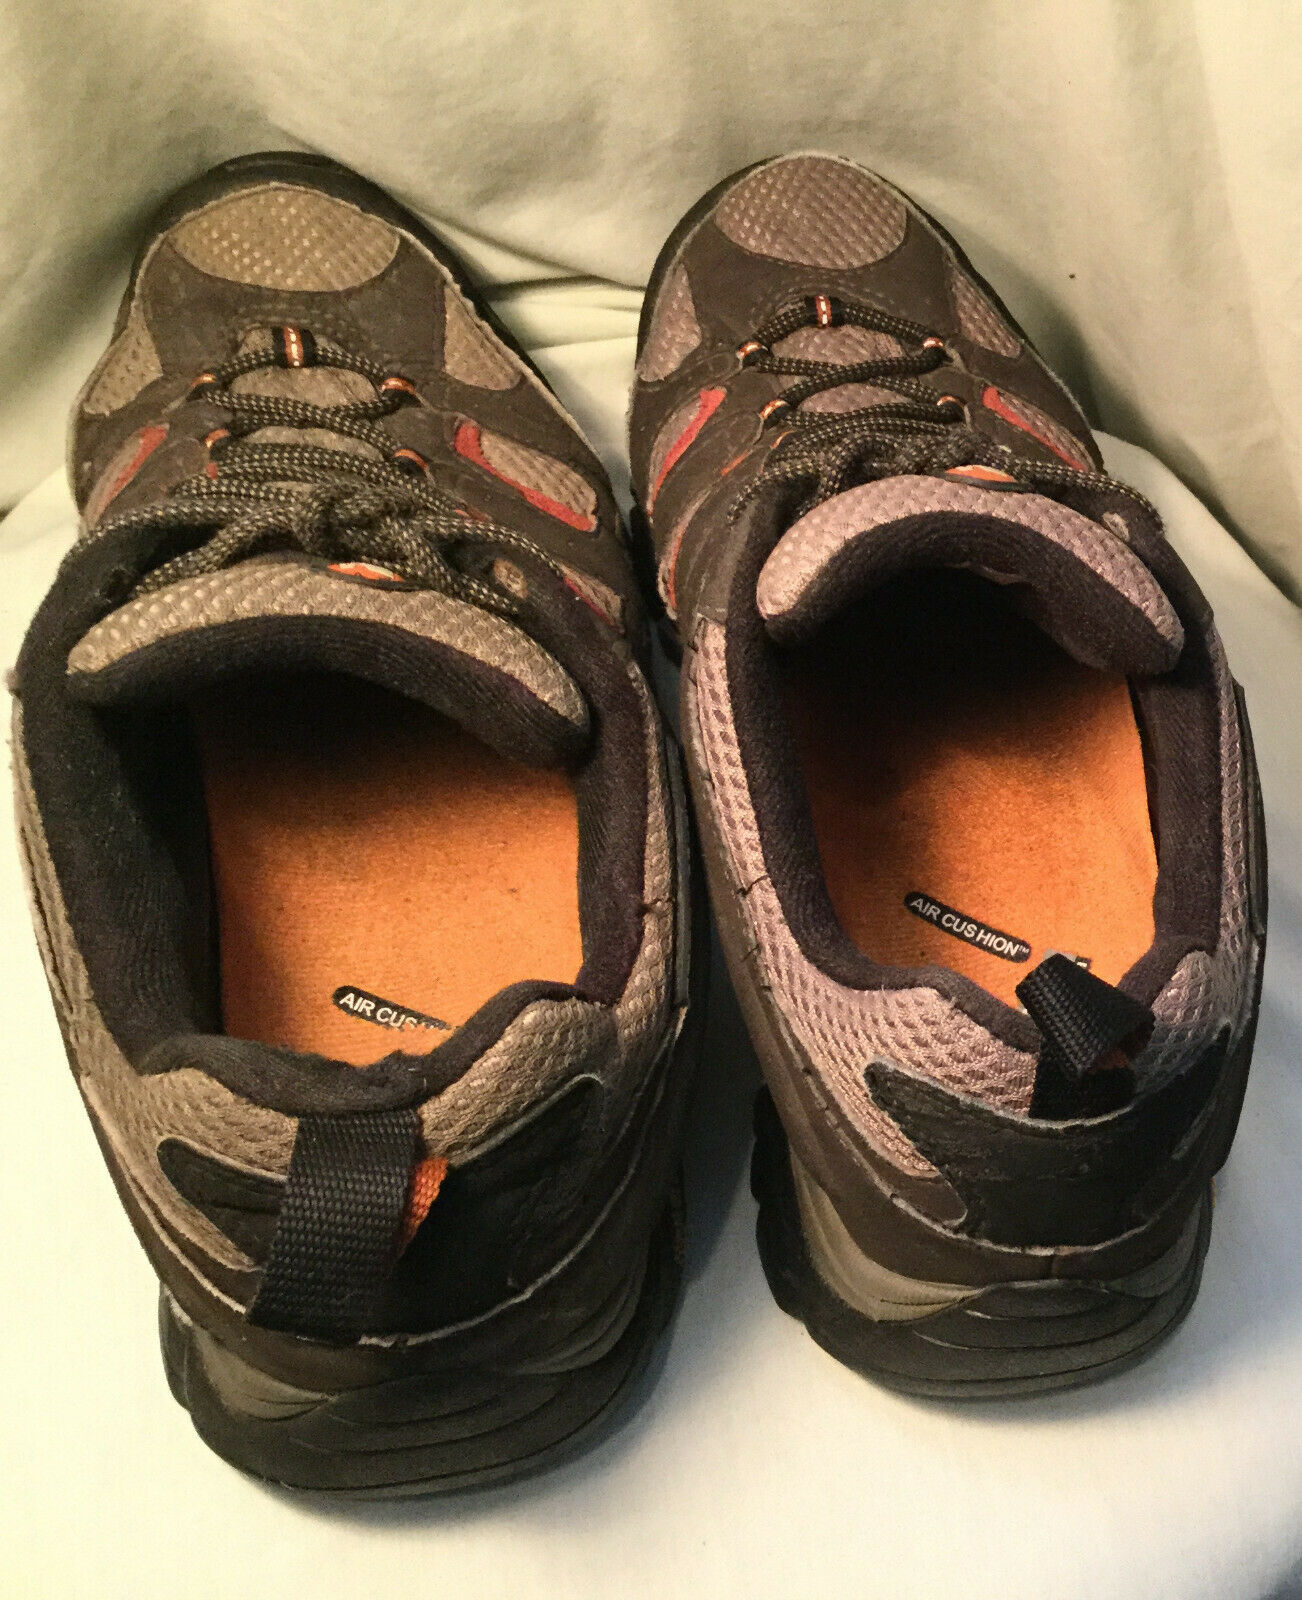 Lot 2 Right Shoes Only Amputee Merrell Men J87323 Sz 11 US Moab Mid Gore-Tex